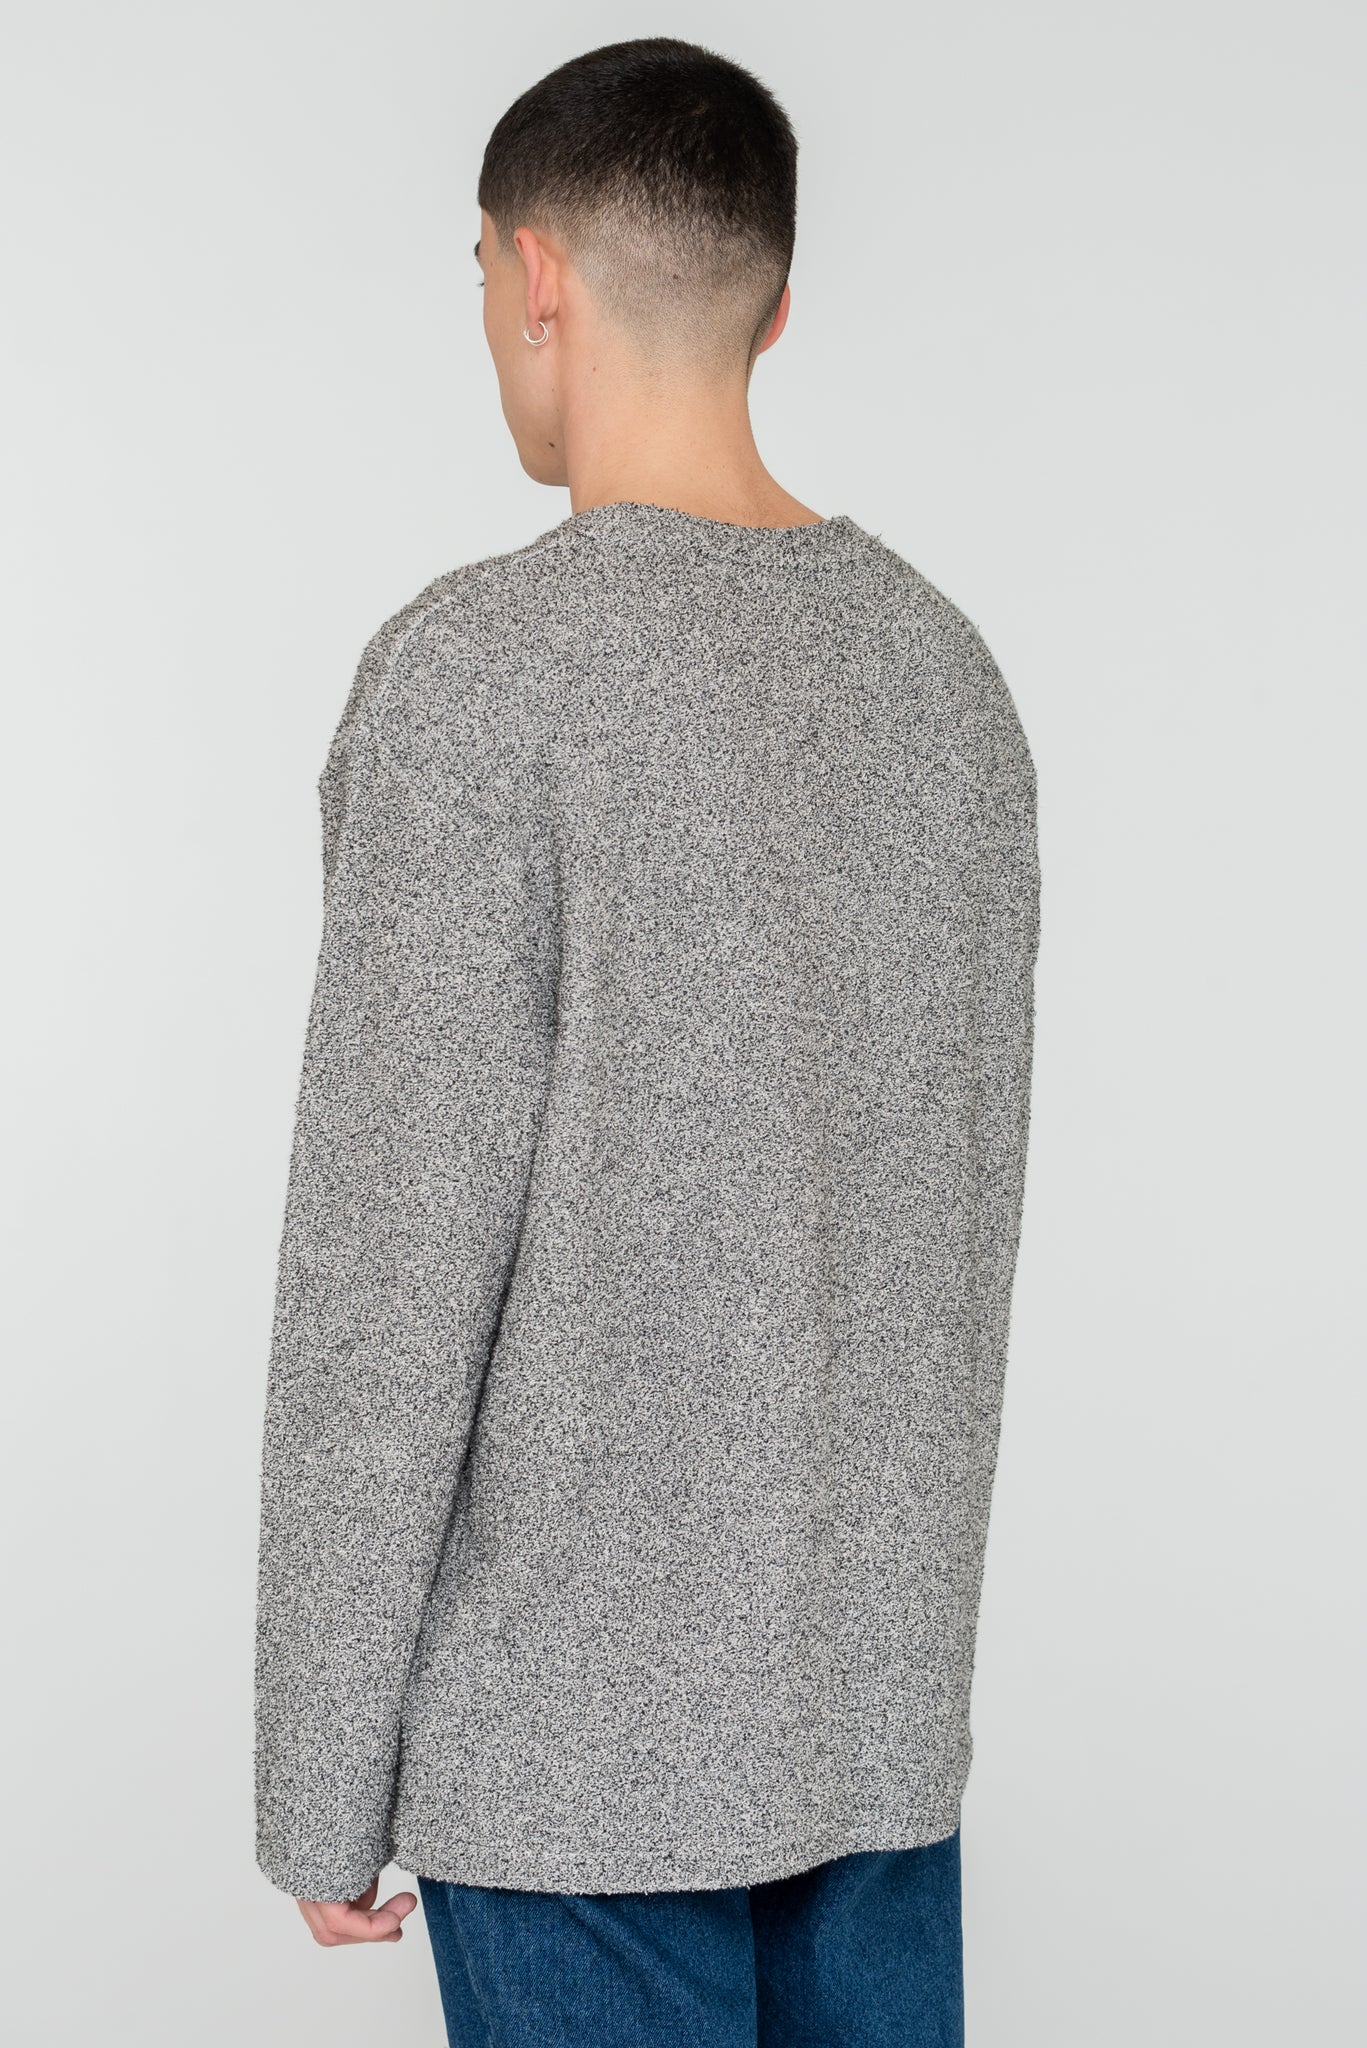 Curt Rubber Patch Sweatshirt